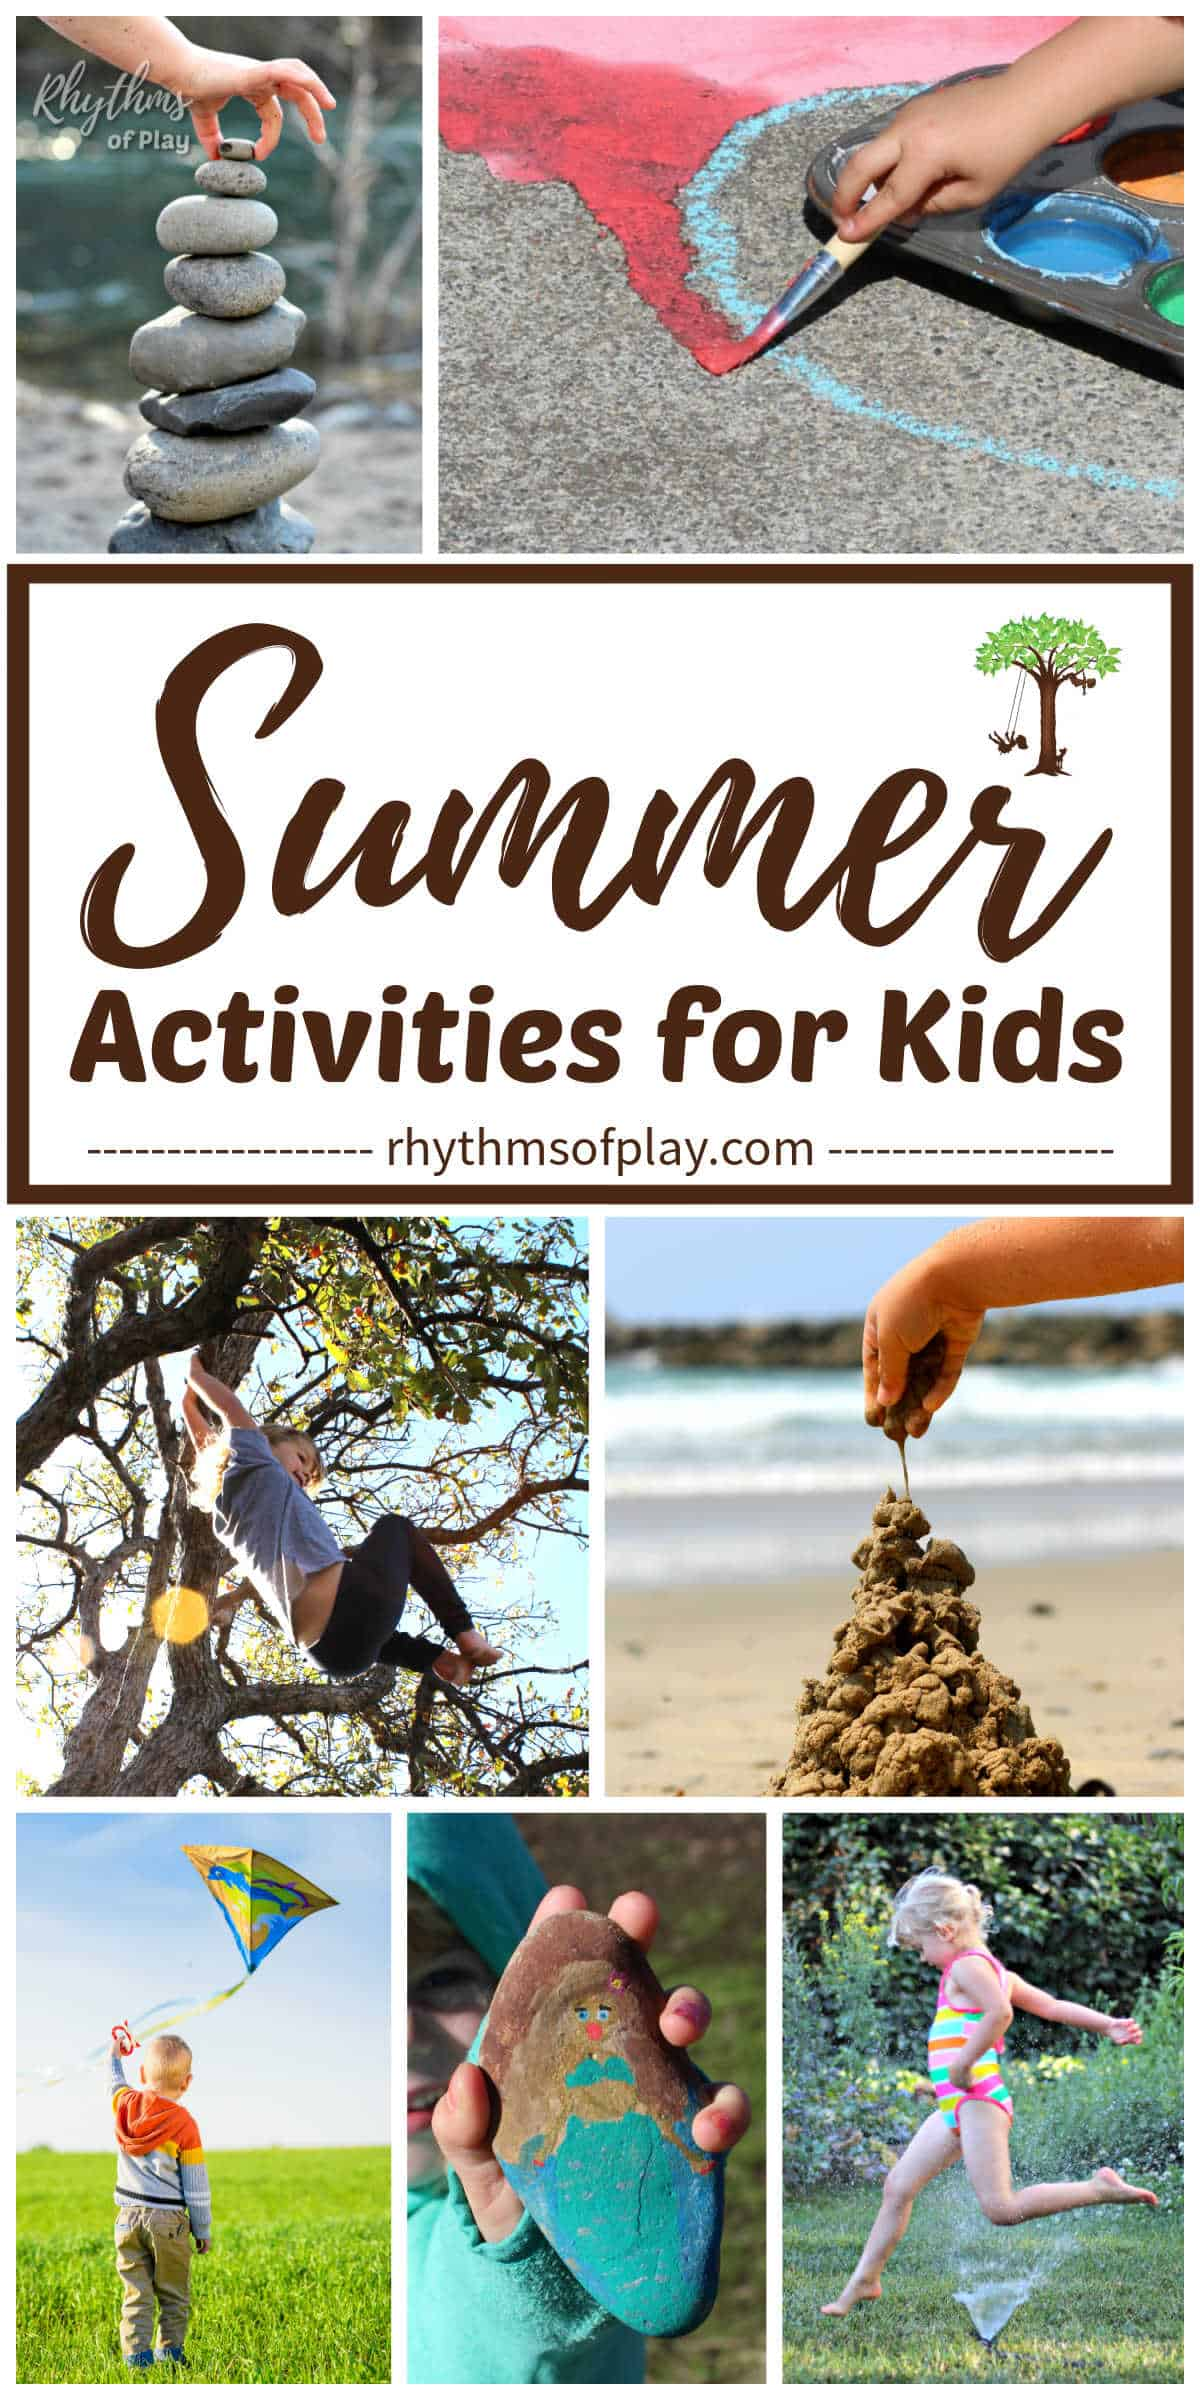 Photographs of children enjoying summer activities for kids; building a sandcastle, climbing a tree, flying a kite, playing in the sprinklers, painted rocks.